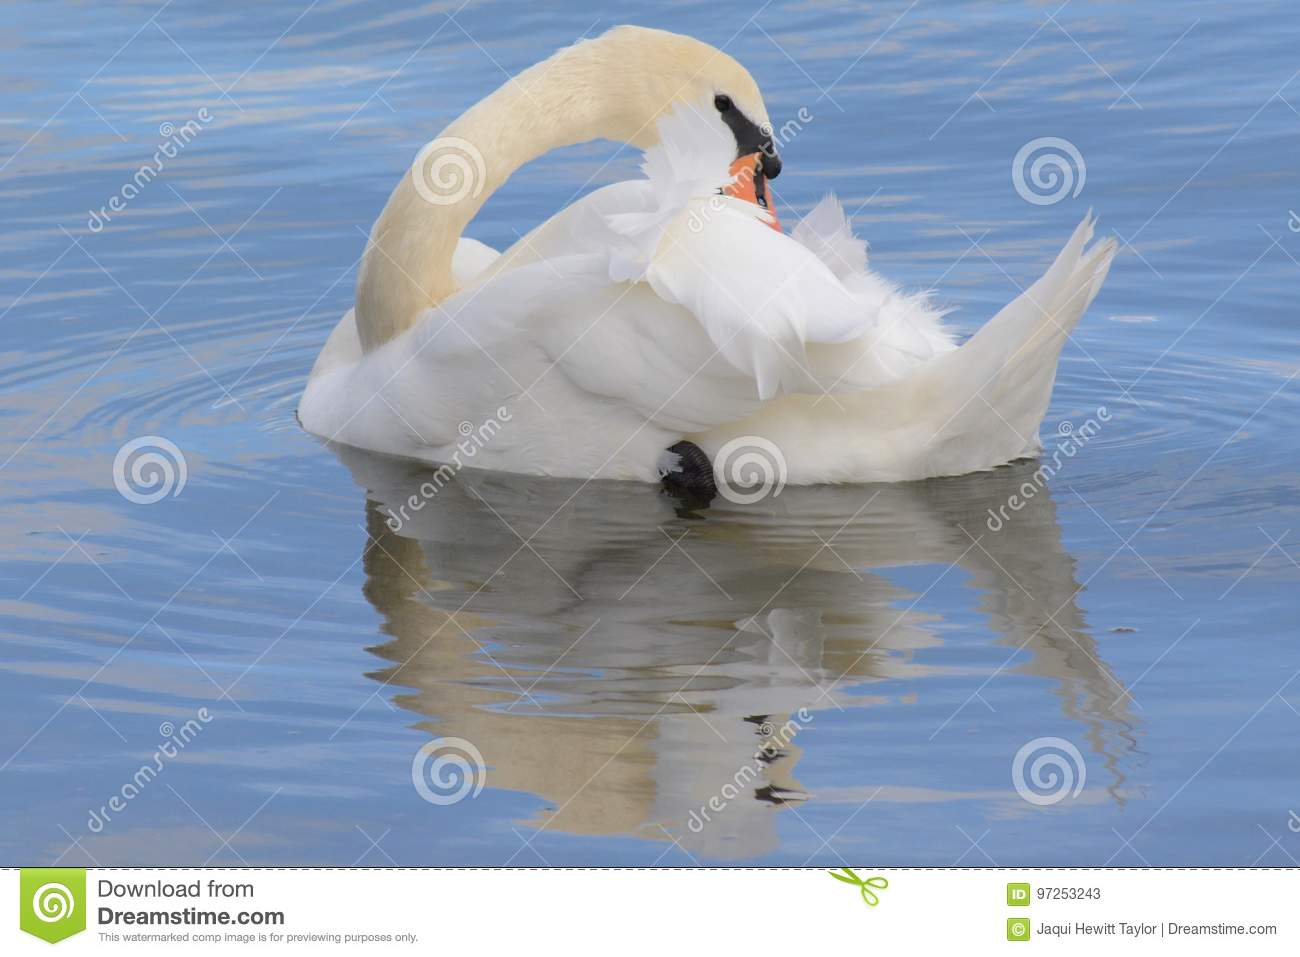 A swan in the centre of a water circle